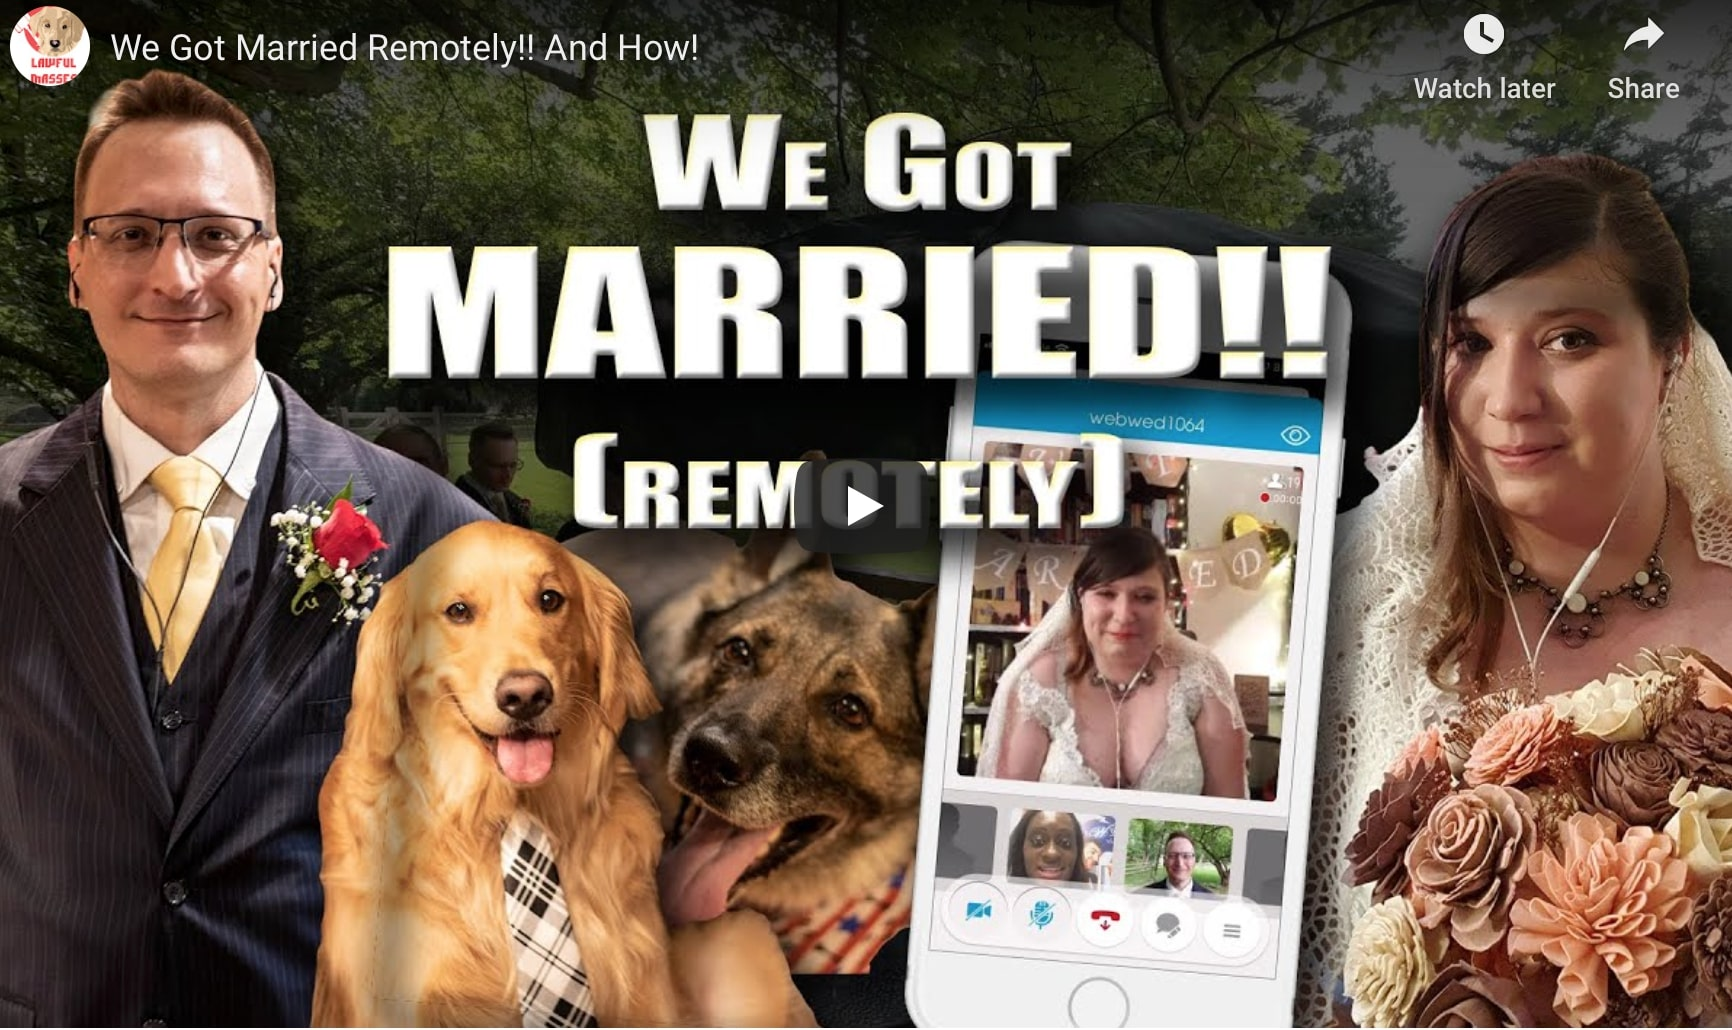 We got married remotely